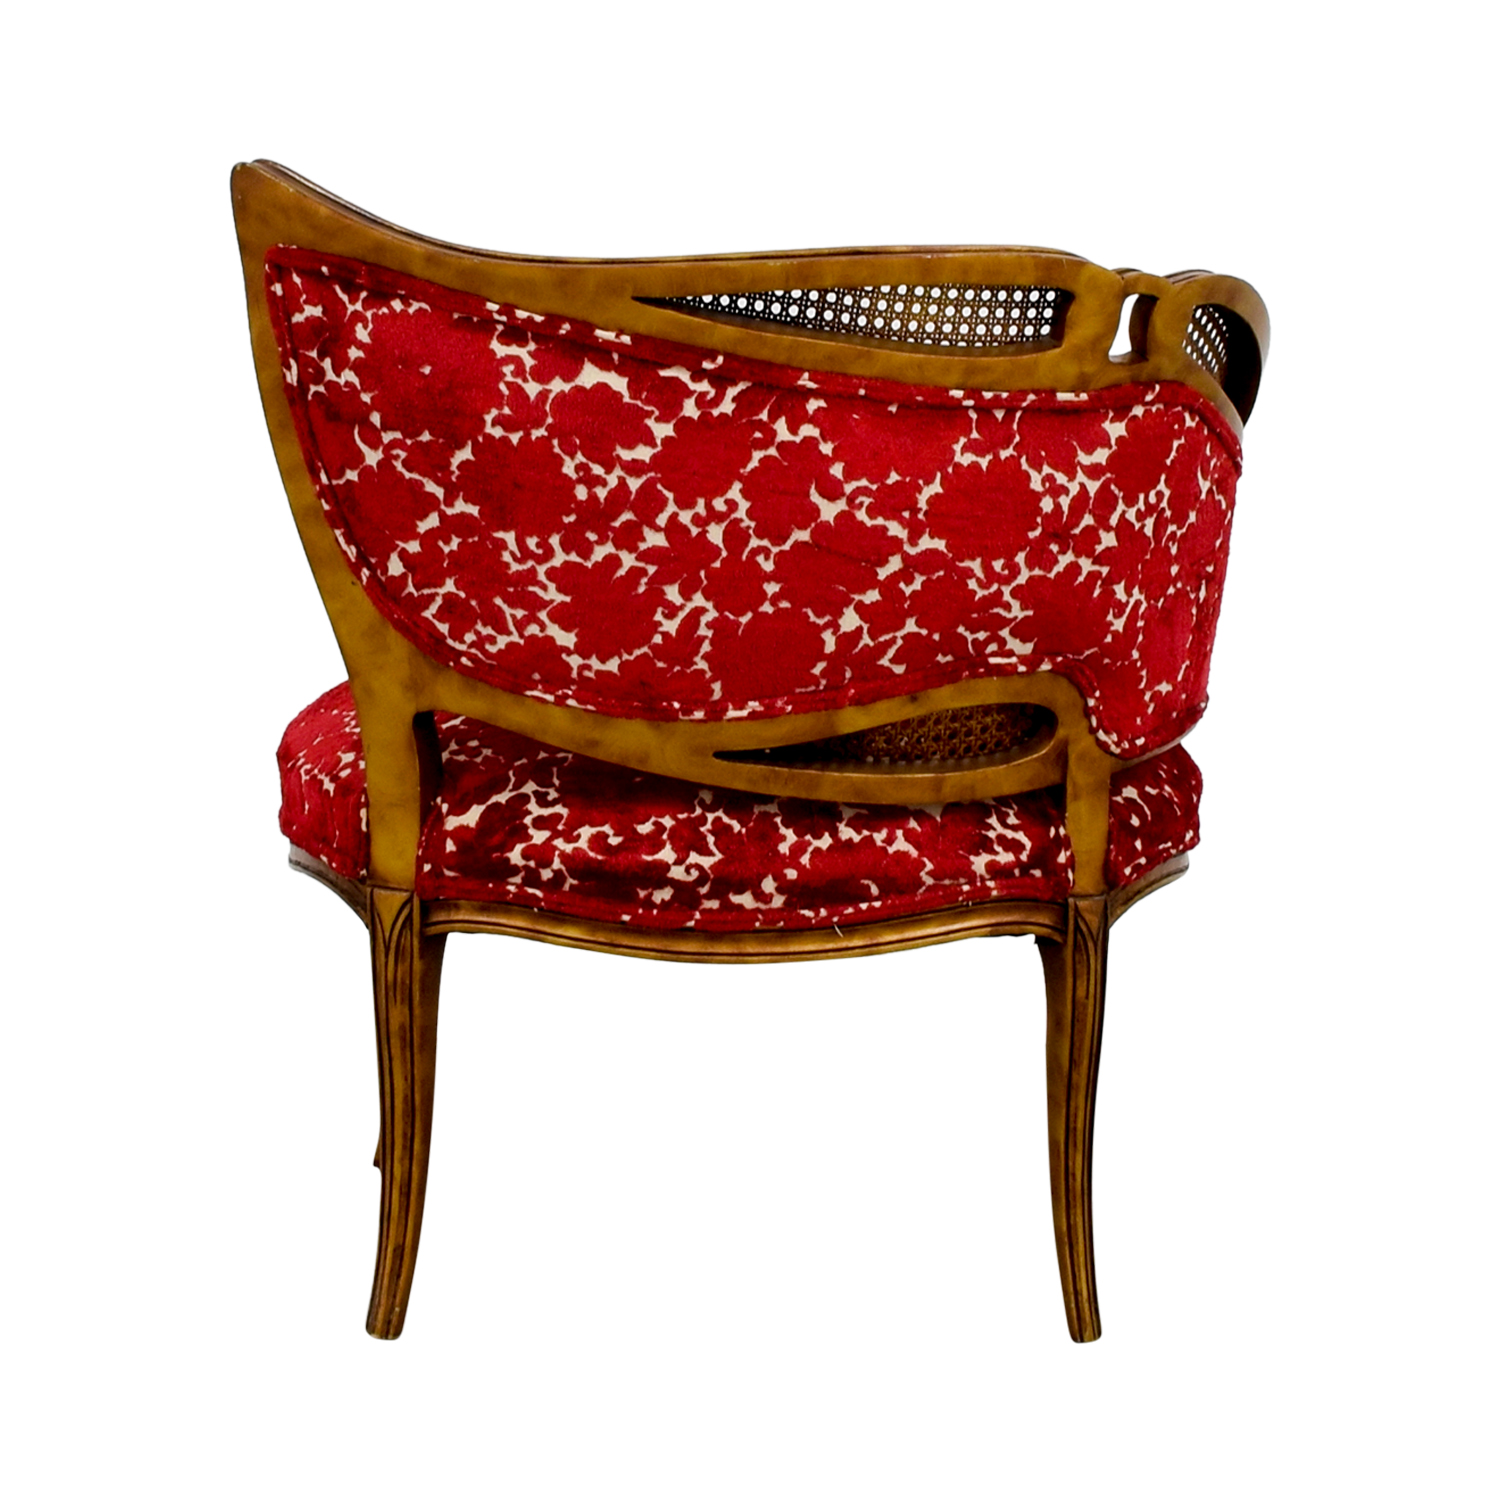 buy Red and Gold Upholstered Wave Back Chair online